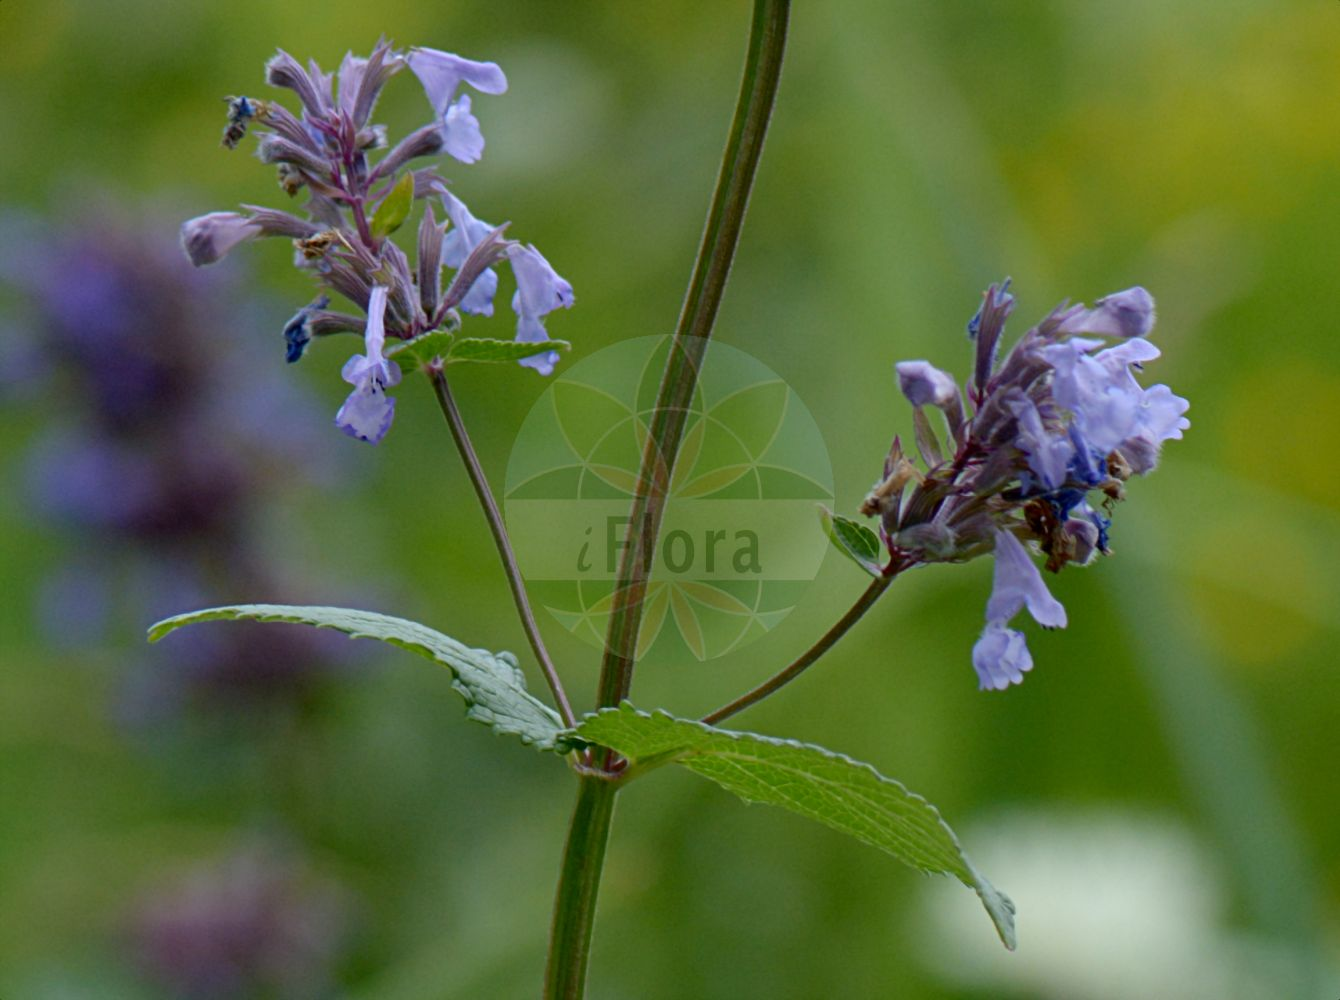 Foto von Nepeta grandiflora. Das Foto wurde in Station Alpine Joseph Fourier, Col du Lautaret, Auvergne-Rhône-Alpes, Frankreich aufgenommen. ---- Photo of Nepeta grandiflora.The picture was taken in Station Alpine Joseph Fourier, Col du Lautaret, Auvergne-Rhône-Alpes, France.(Nepeta grandiflora,Nepeta argentea,Nepeta colorata,Nepeta grandis,Nepeta lanceolata,Nepeta melissifolia,Nepeta,Katzenminze,Catnip,Lamiaceae,Lippenbluetengewaechse;Lippenbluetler,Nettle family)